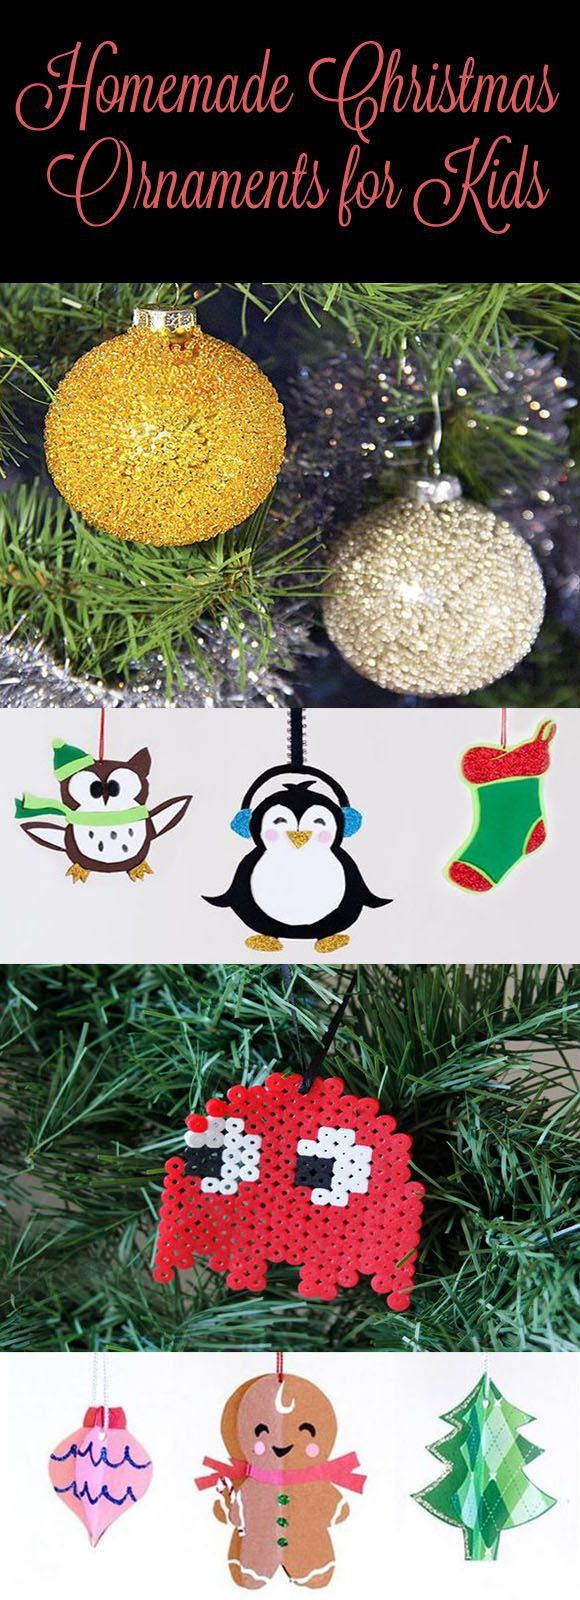 129 Best Diy Holiday Decor And Crafts Images On Pinterest  Holiday Decor,  Christmas Decorations And Holiday Crafts